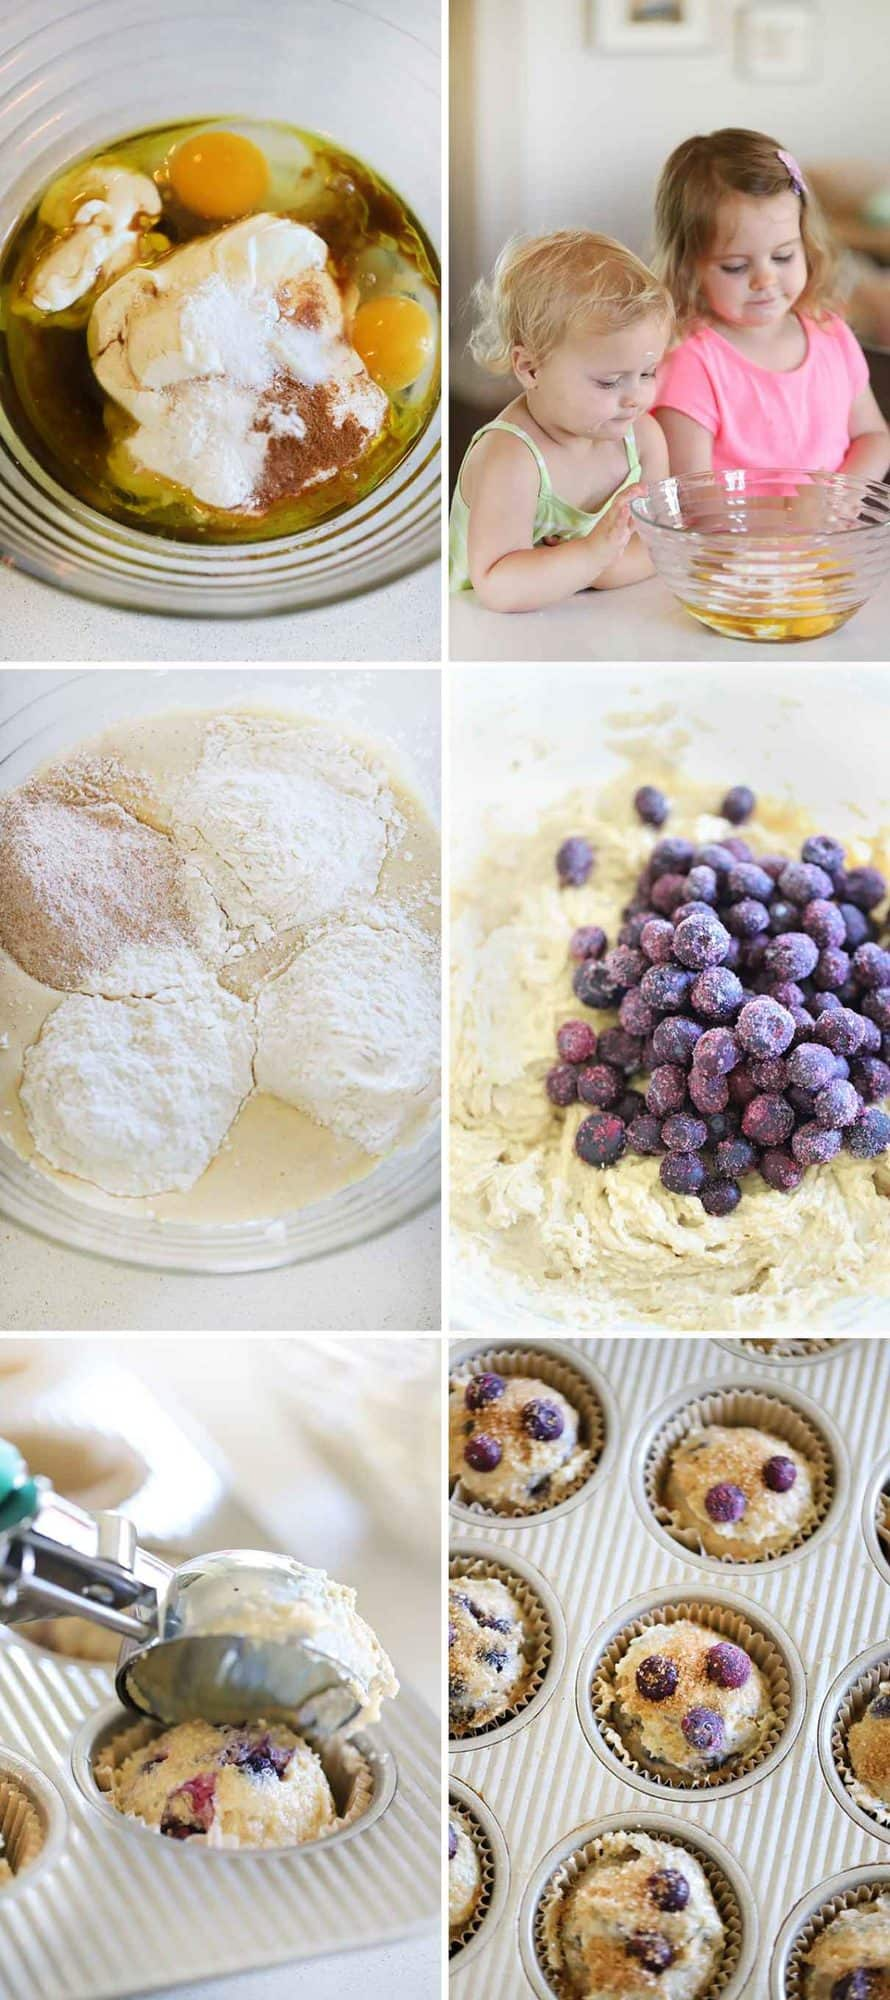 Photo collage showing how to make healthy blueberry muffins with kids helping.